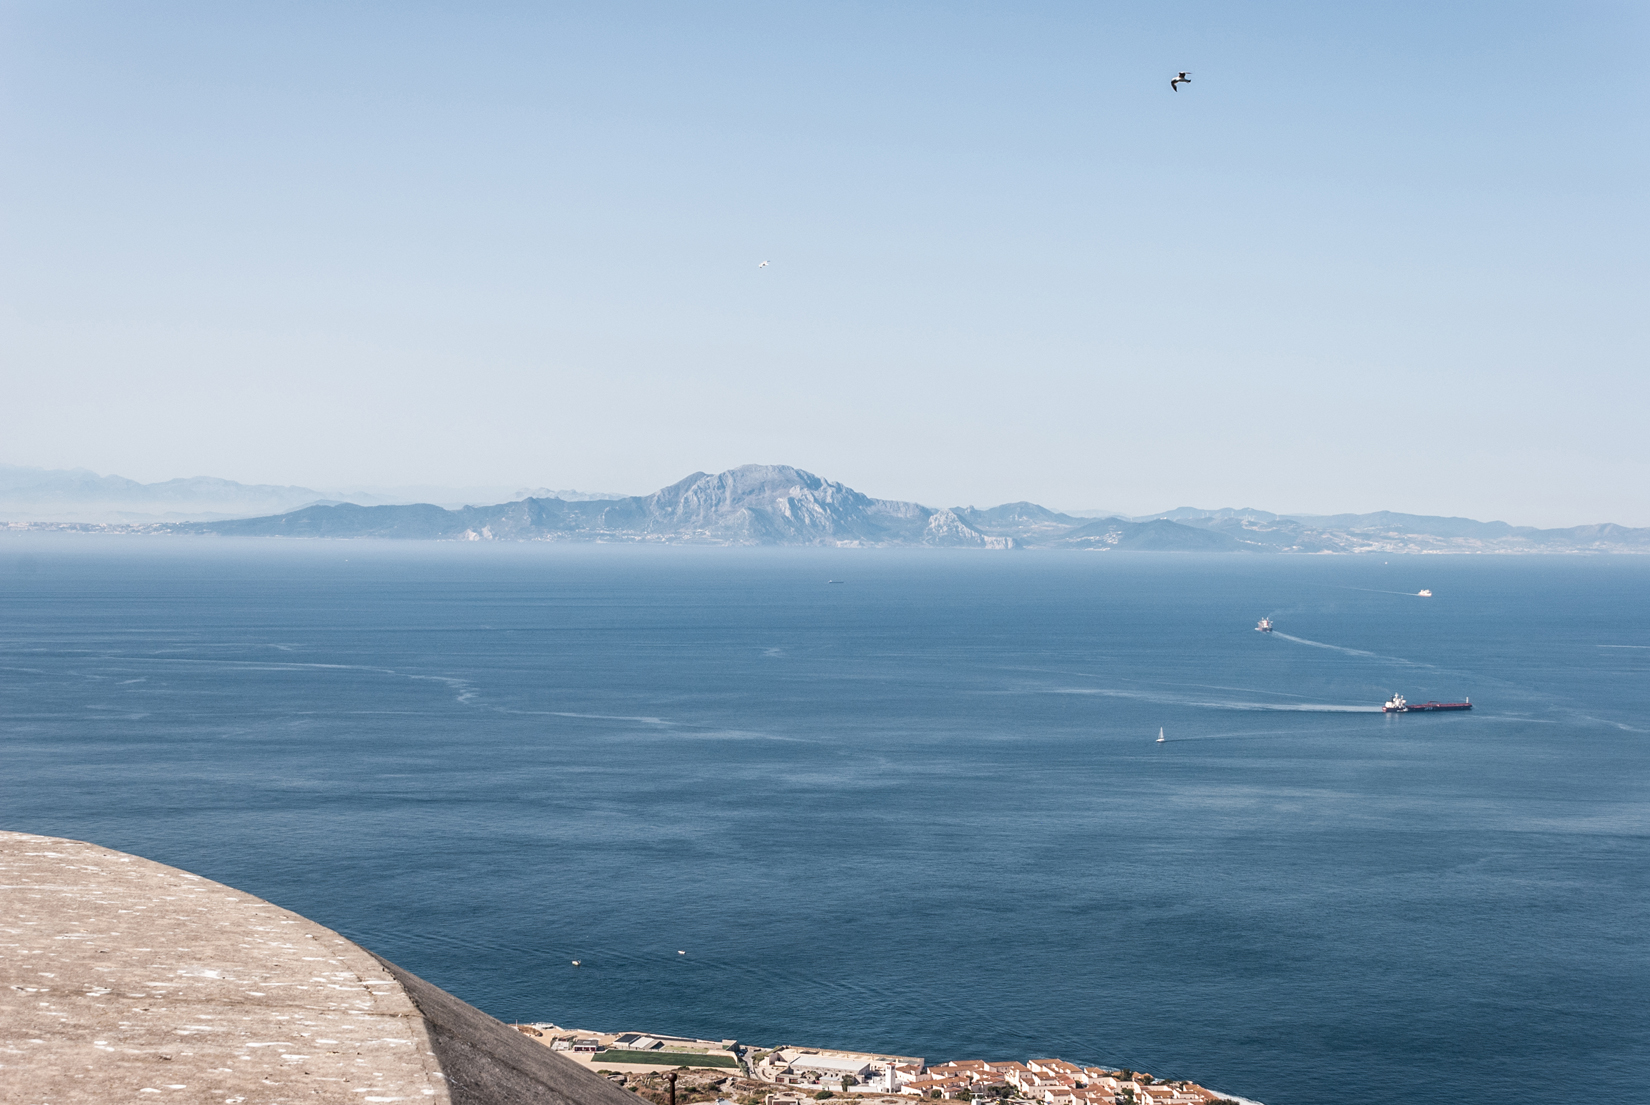 Across the water is the Spanish city of Ceuta which shares a western border with Morocco, North Africa